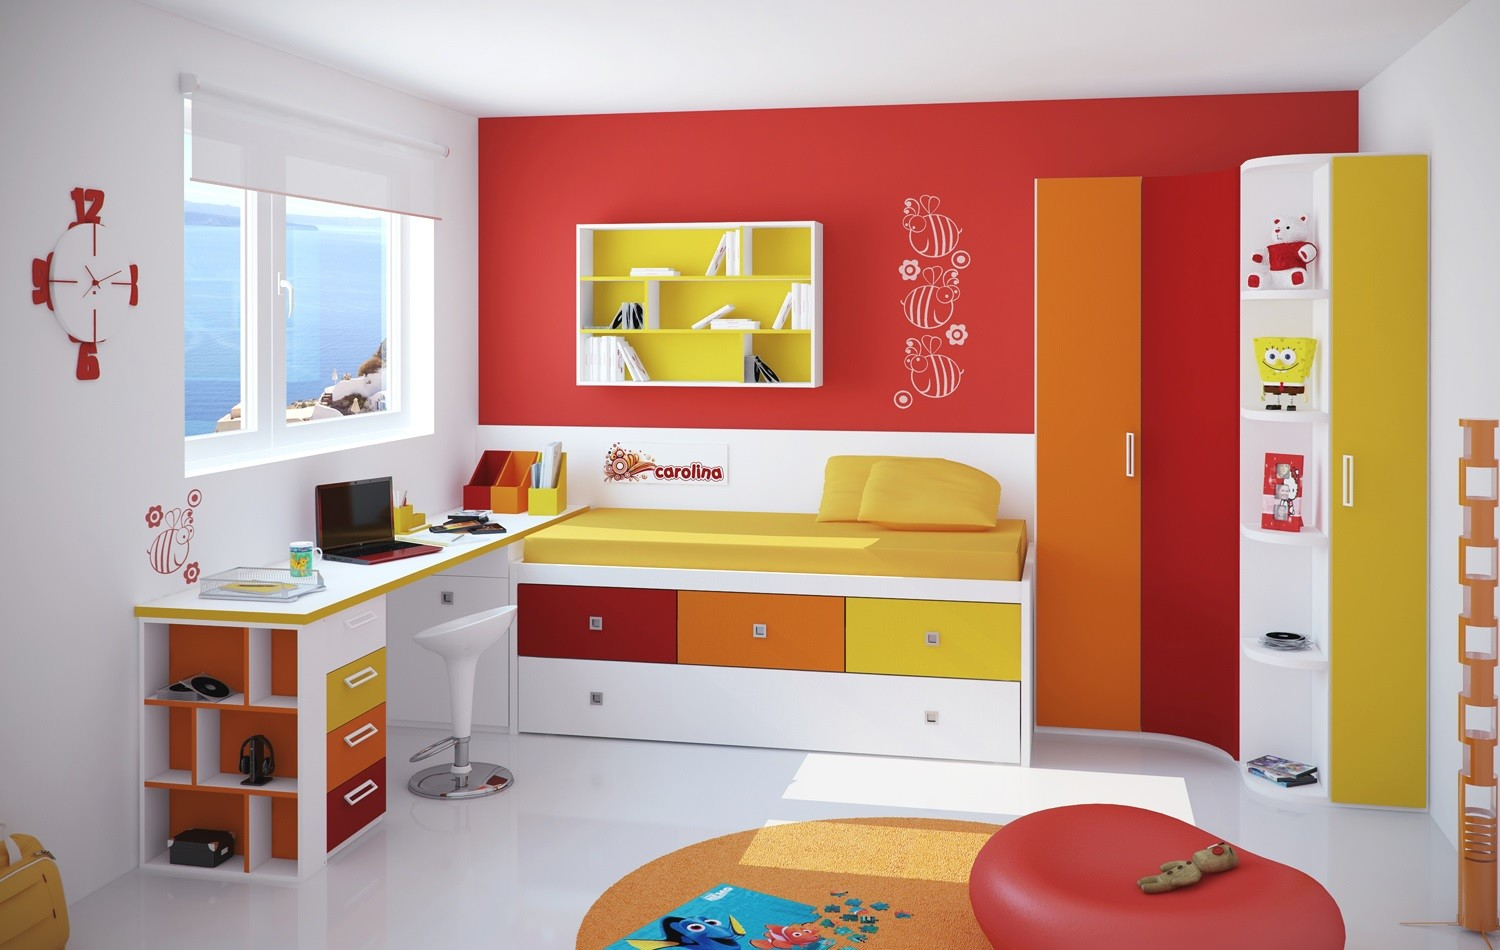 blog des couleurs fraiches et gaies dans une chambre d. Black Bedroom Furniture Sets. Home Design Ideas